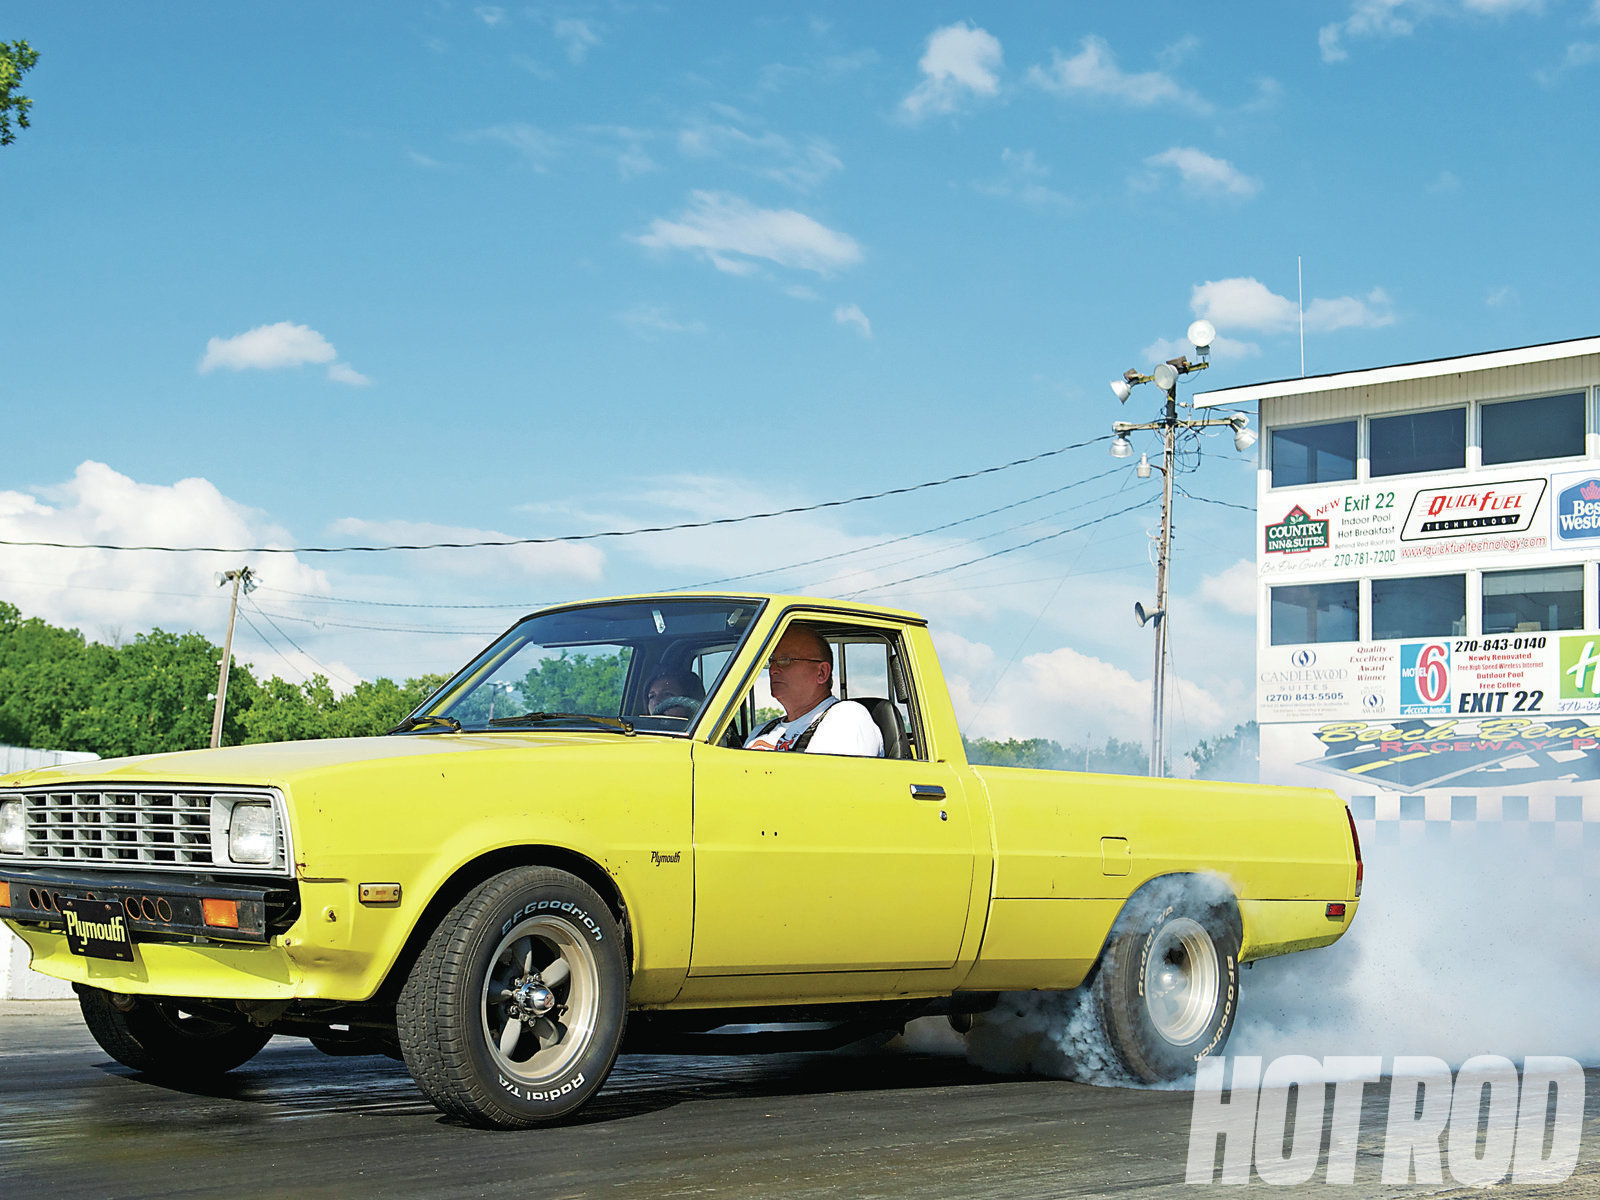 Hot Rod To The Rescue - 1980 Plymouth Arrow - Hot Rod Network